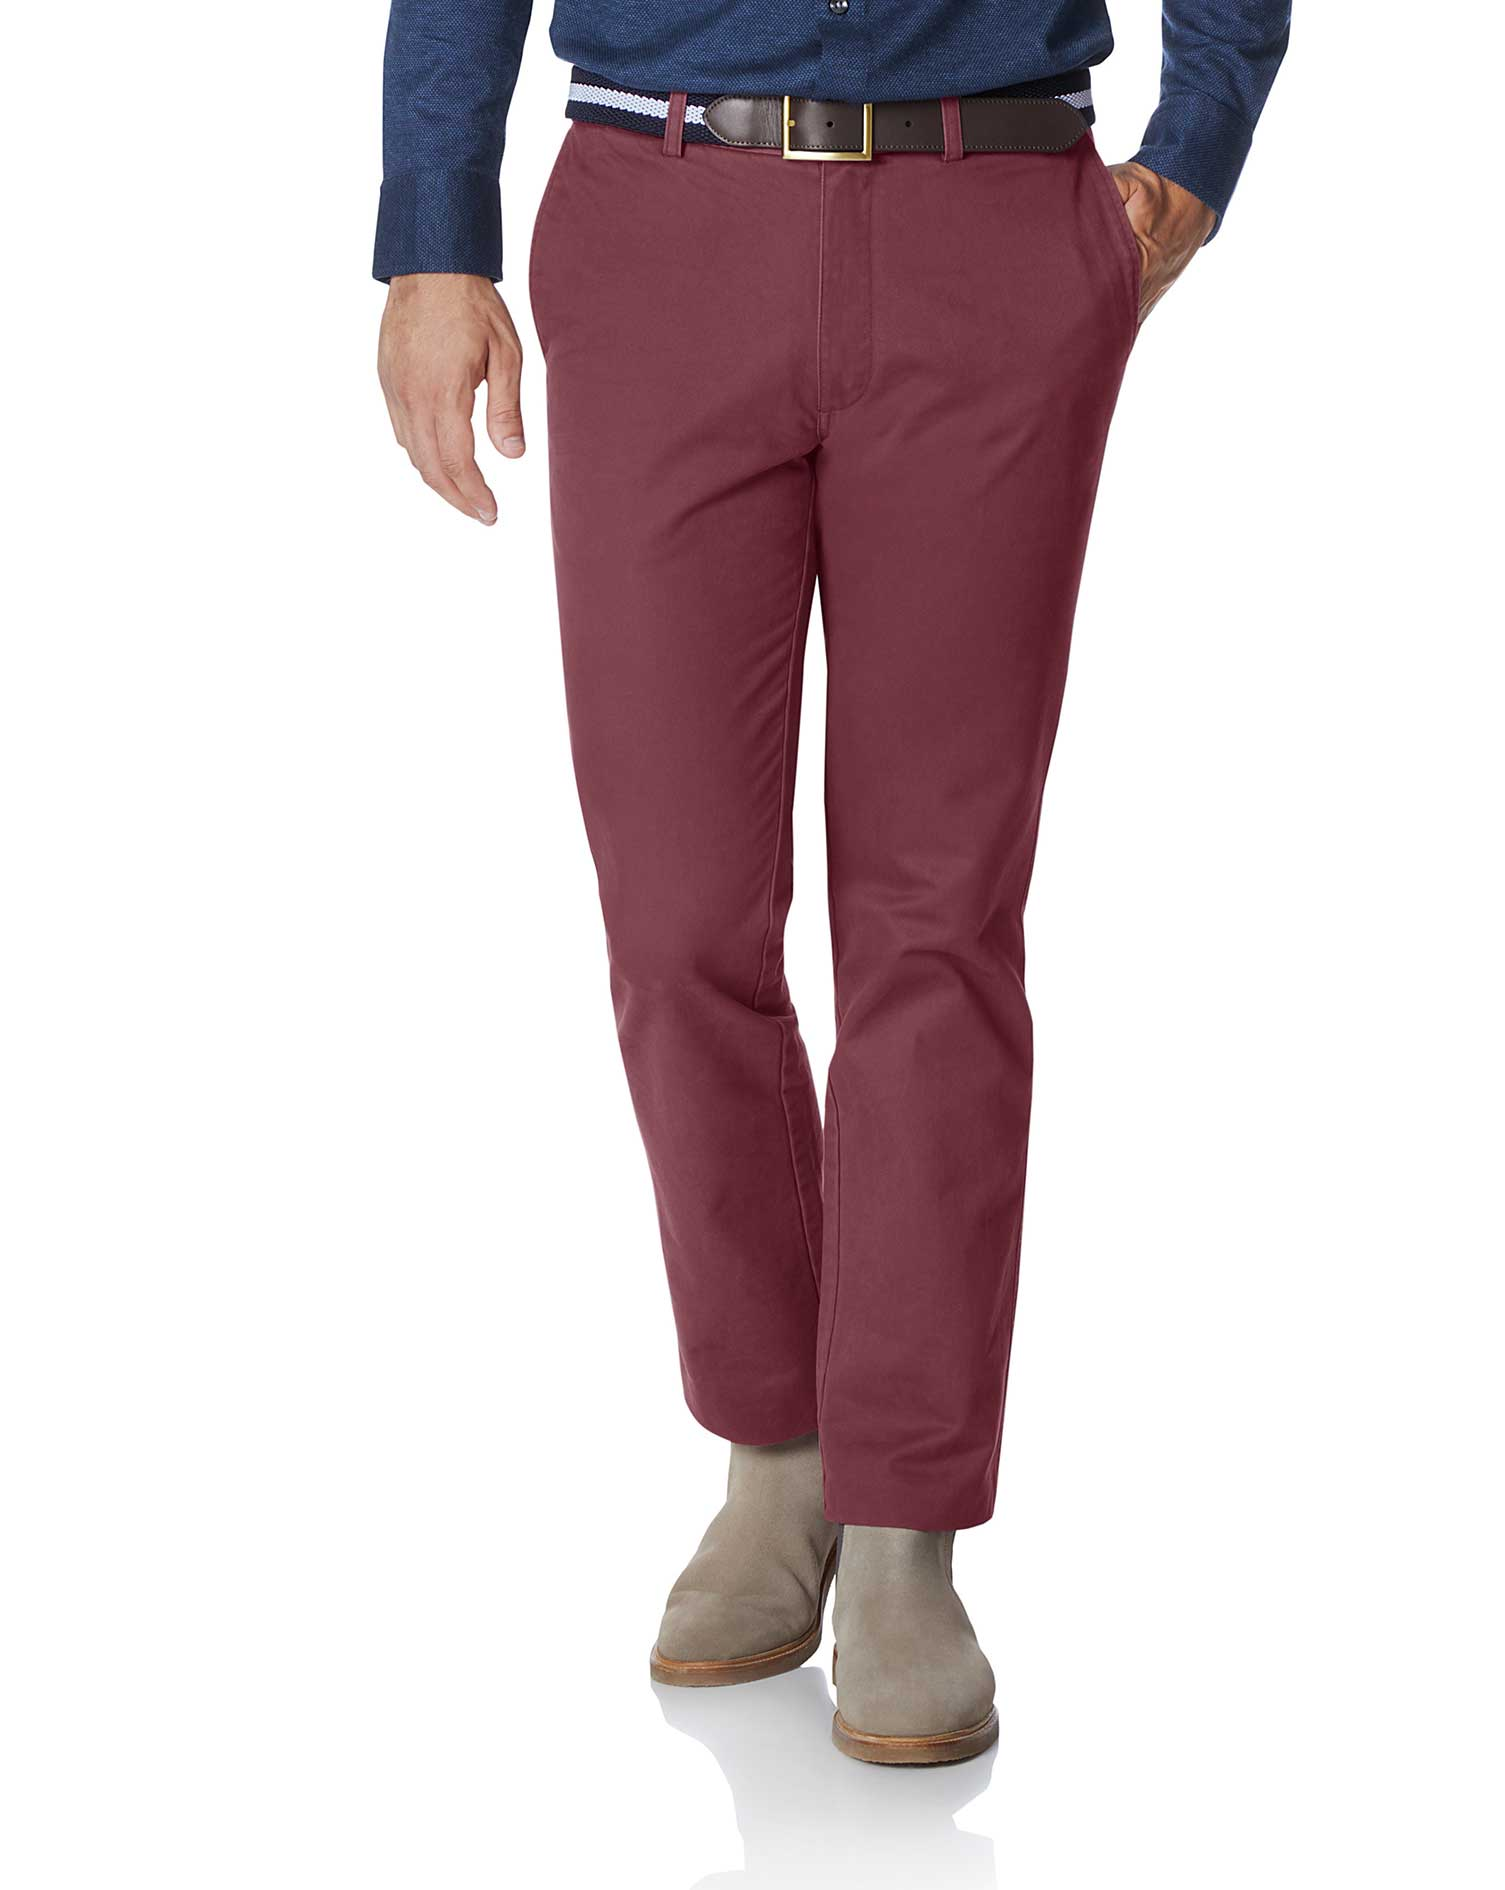 Dark Pink Classic Fit Flat Front Washed Cotton Chino Trousers Size W36 L32 by Charles Tyrwhitt